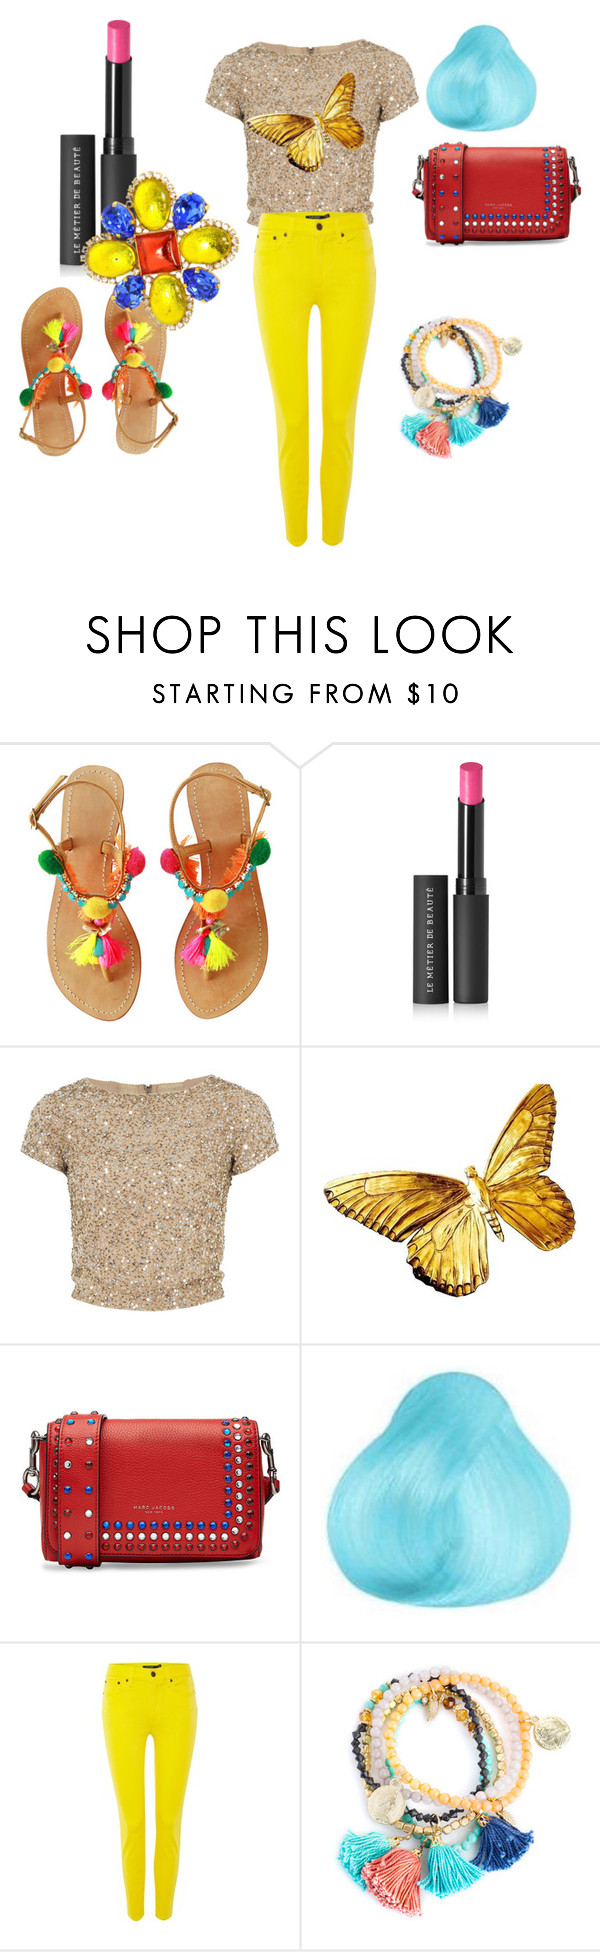 """""""Untitled #29"""" by ye-britman ❤ liked on Polyvore featuring interior, interiors, interior design, home, home decor, interior decorating, Le Métier de Beauté, Alice + Olivia, Marc Jacobs and Lauren Ralph Lauren"""